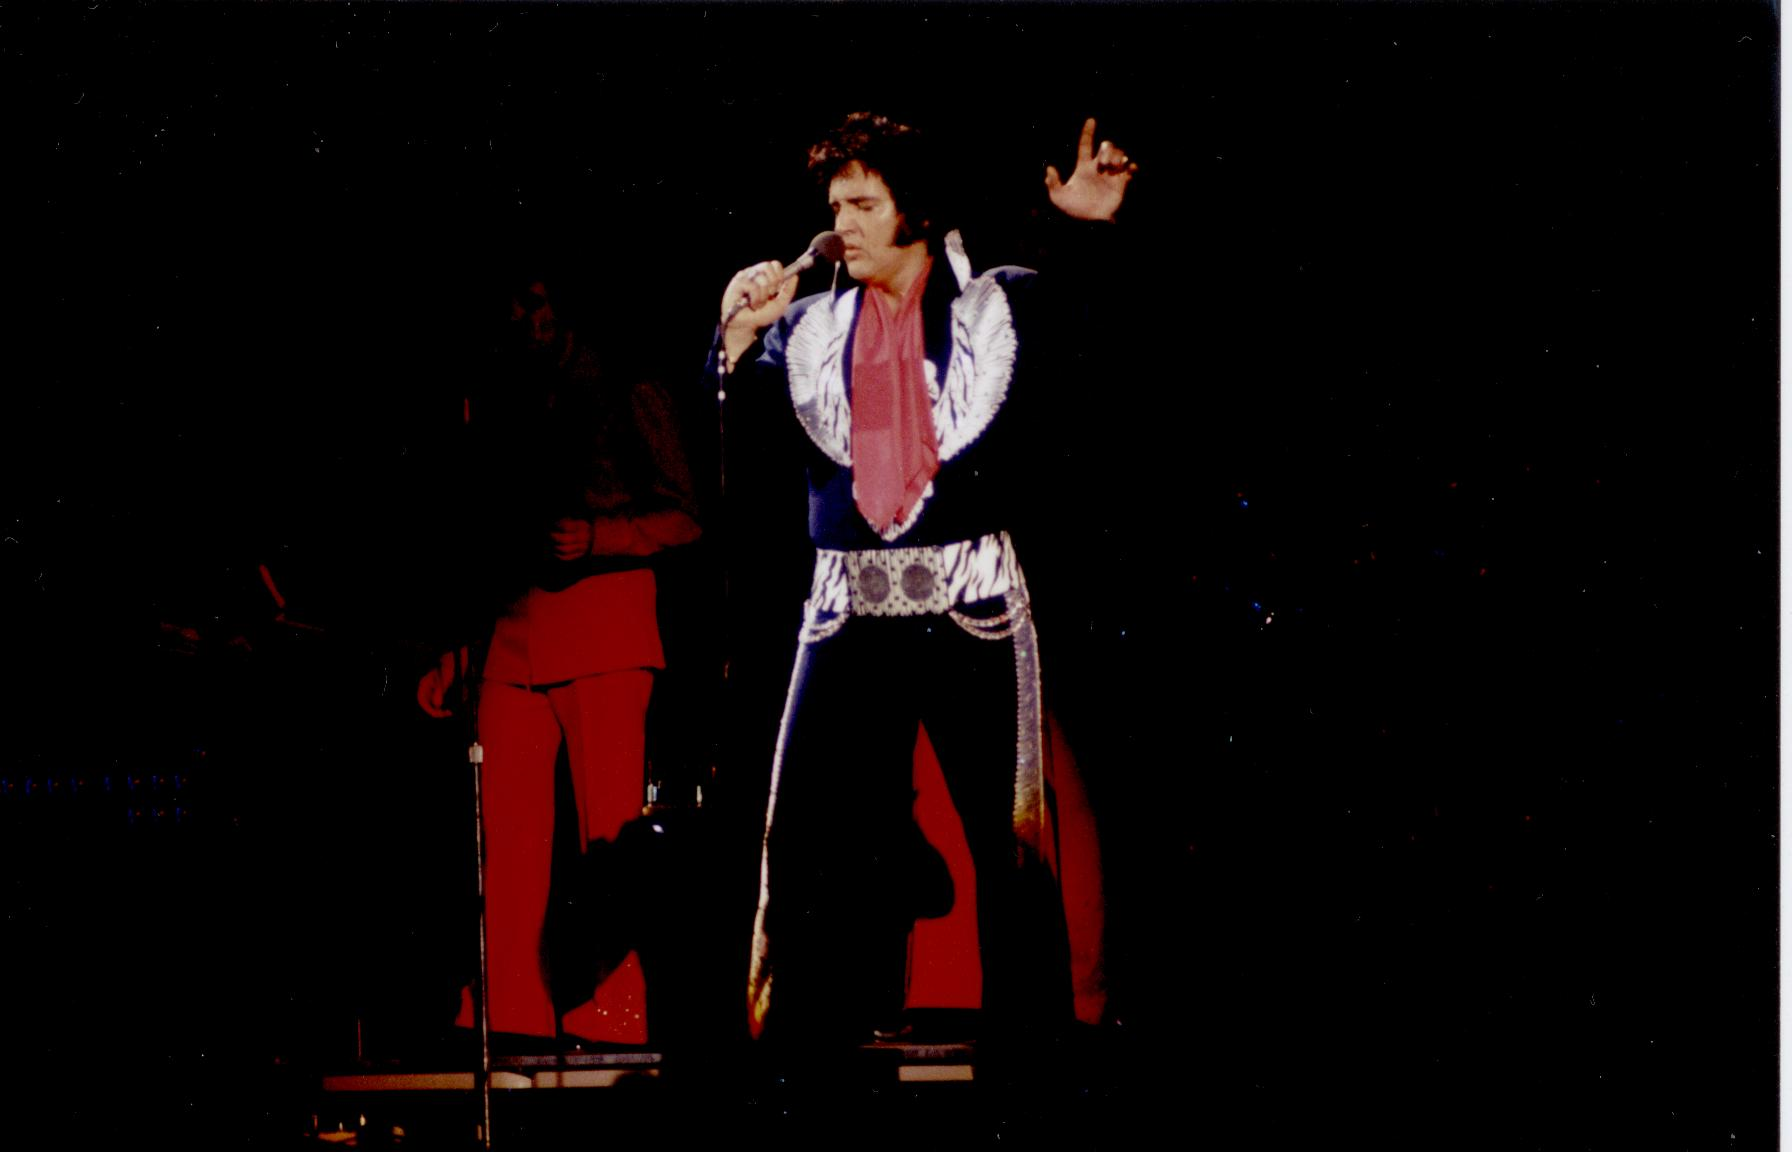 https://i1.wp.com/www.elvisconcerts.com/pictures/s75053004.jpg